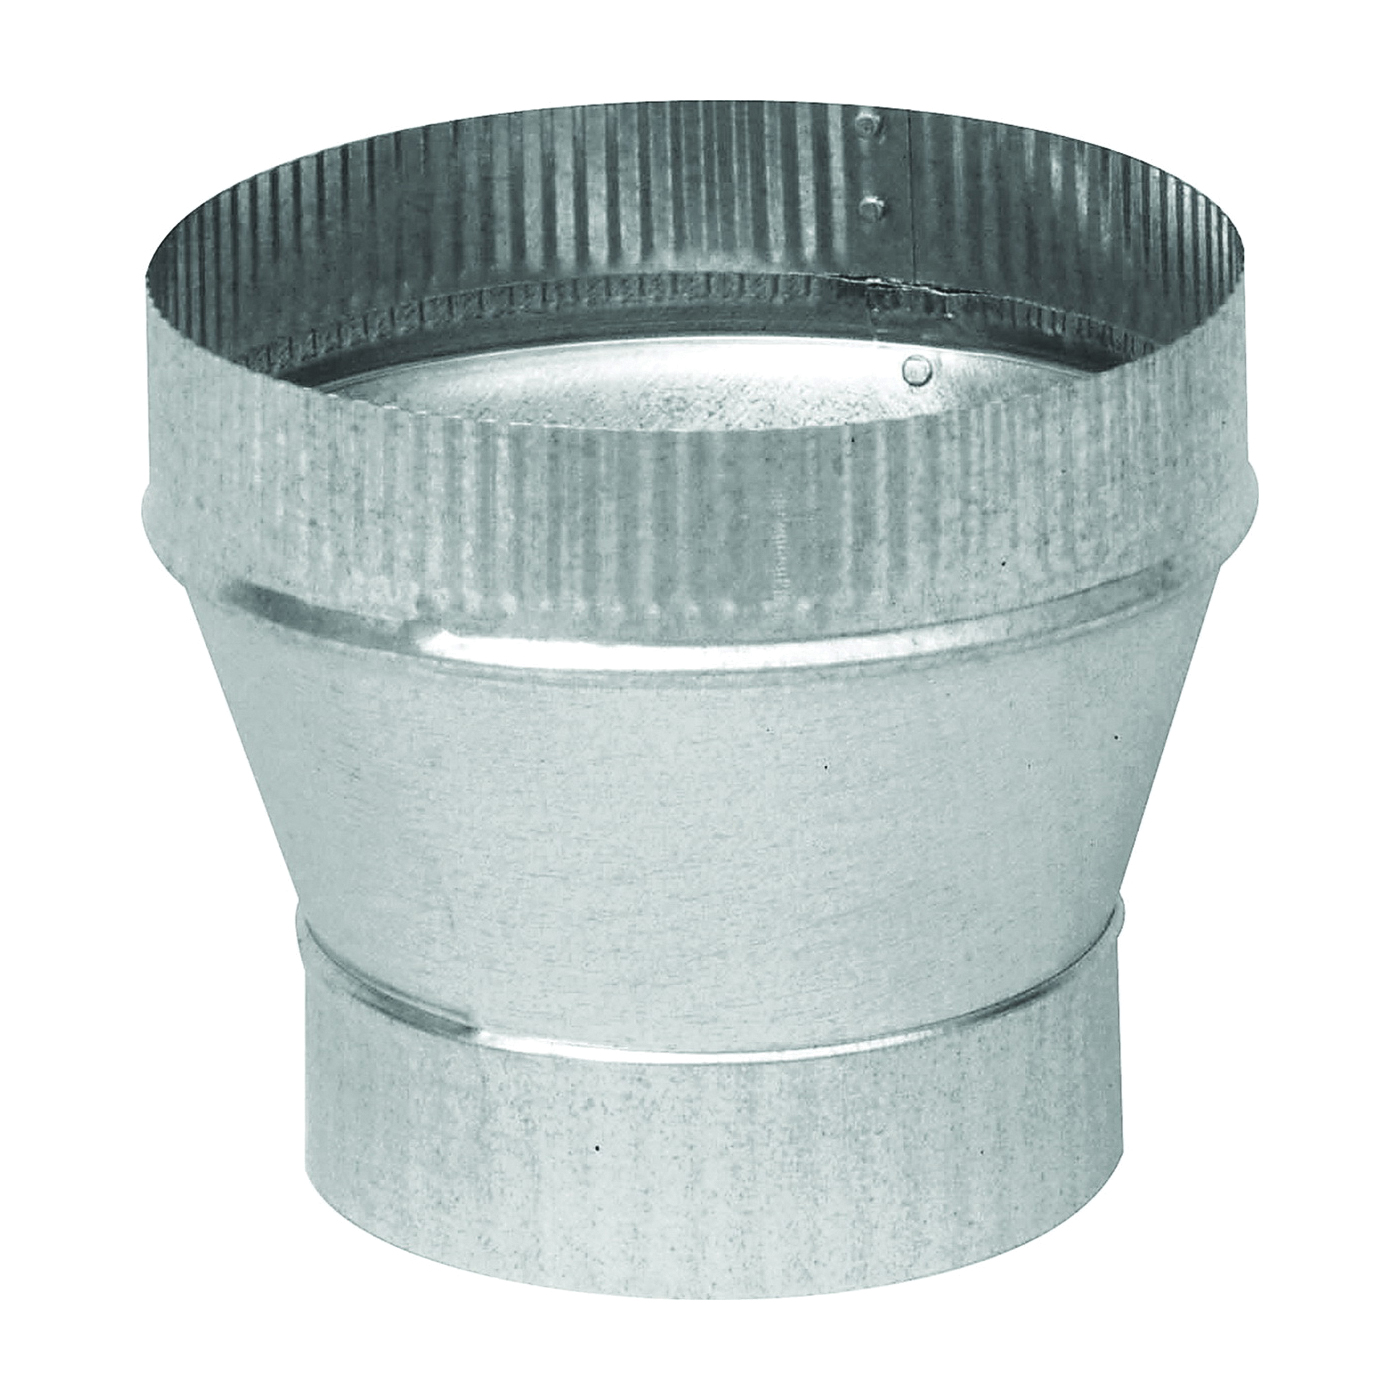 Picture of Imperial GV1359 Furnace Short Increaser, 6 to 7 in Connection, 24 Gauge, Galvanized